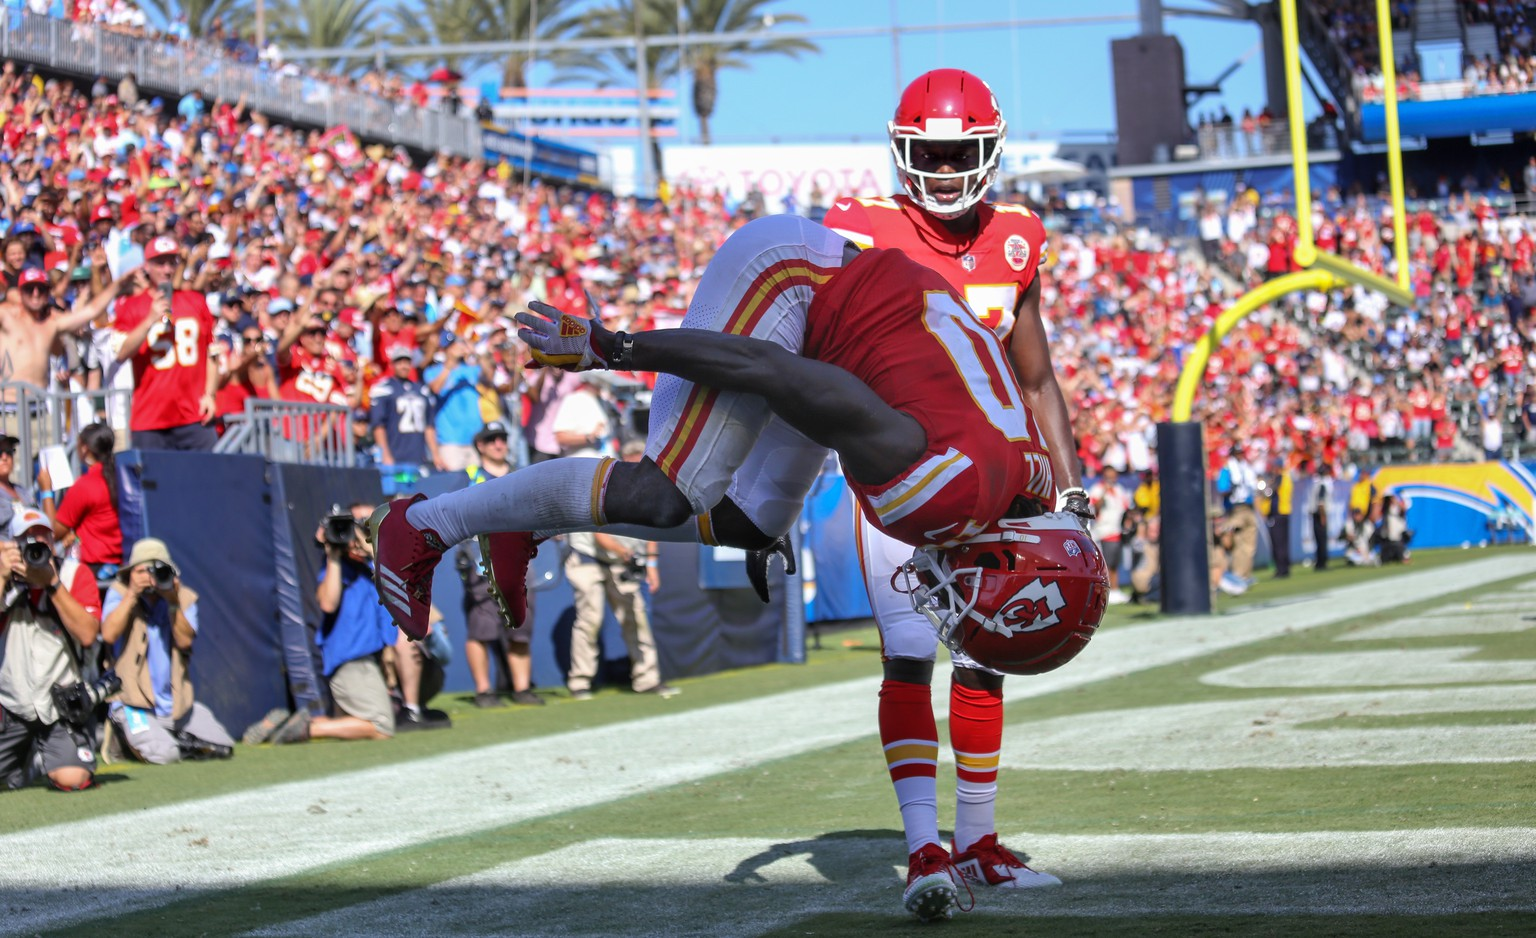 epa07009419 Kansas City Chiefs wide receiver Tyreek Hill (L) does a back flip celebration of his touchdown catch as teammate Chris Conley looks on against the Los Angeles Chargers during the second half of their game at the Stubhub Center in Carson, California, USA 09 September 2018.  EPA/EUGENE GARCIA